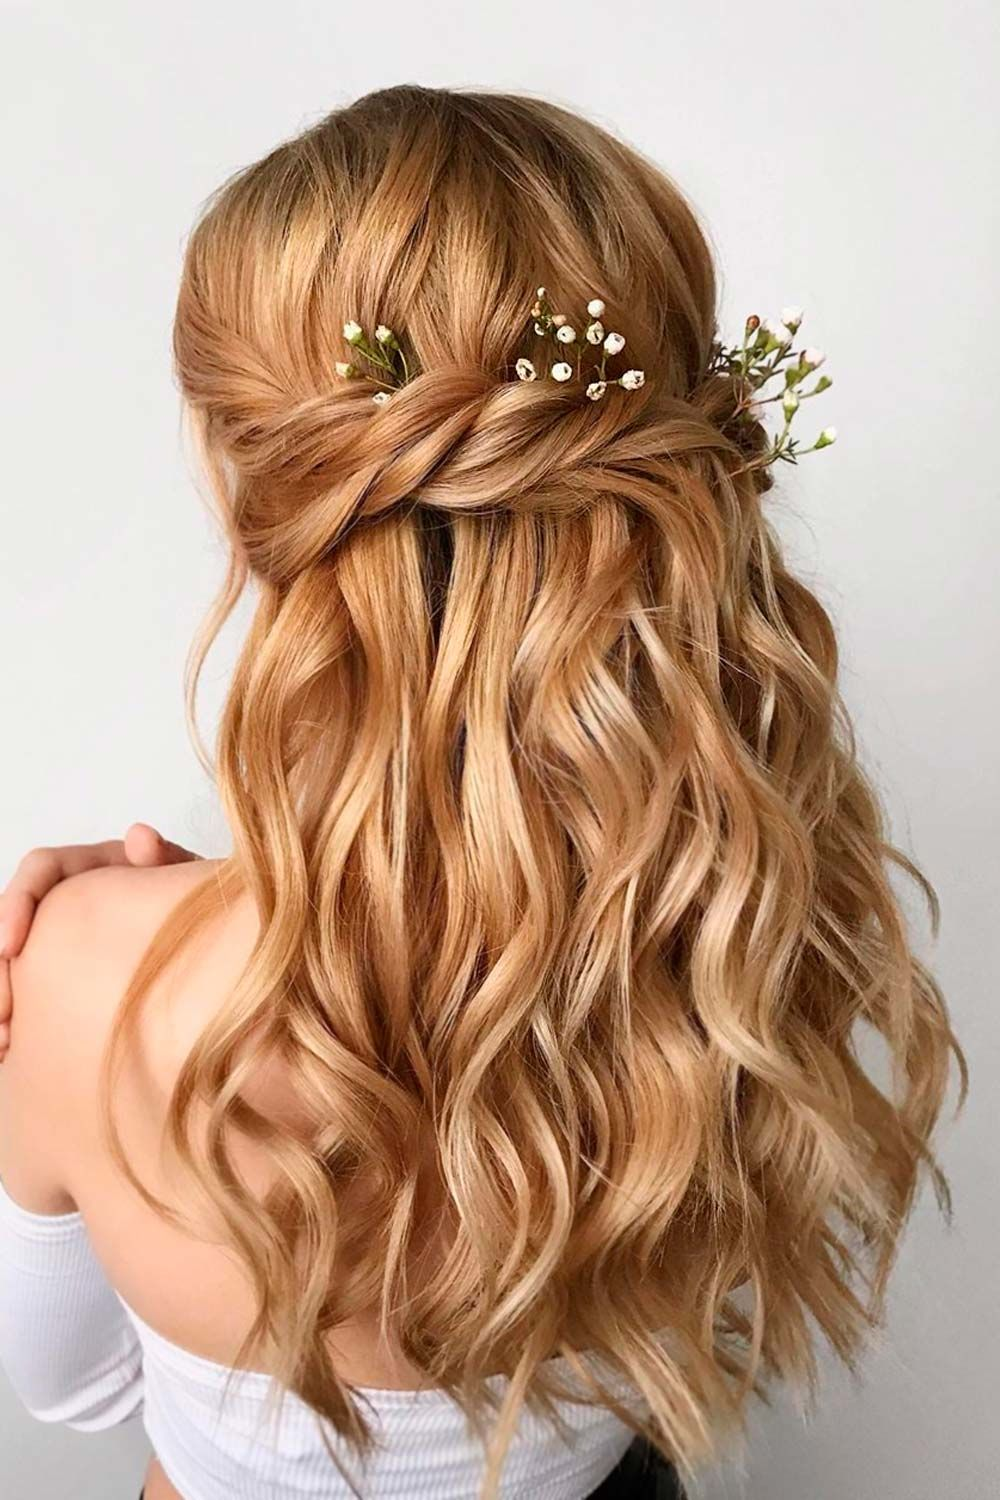 Twisted Hairstyle With Accessories